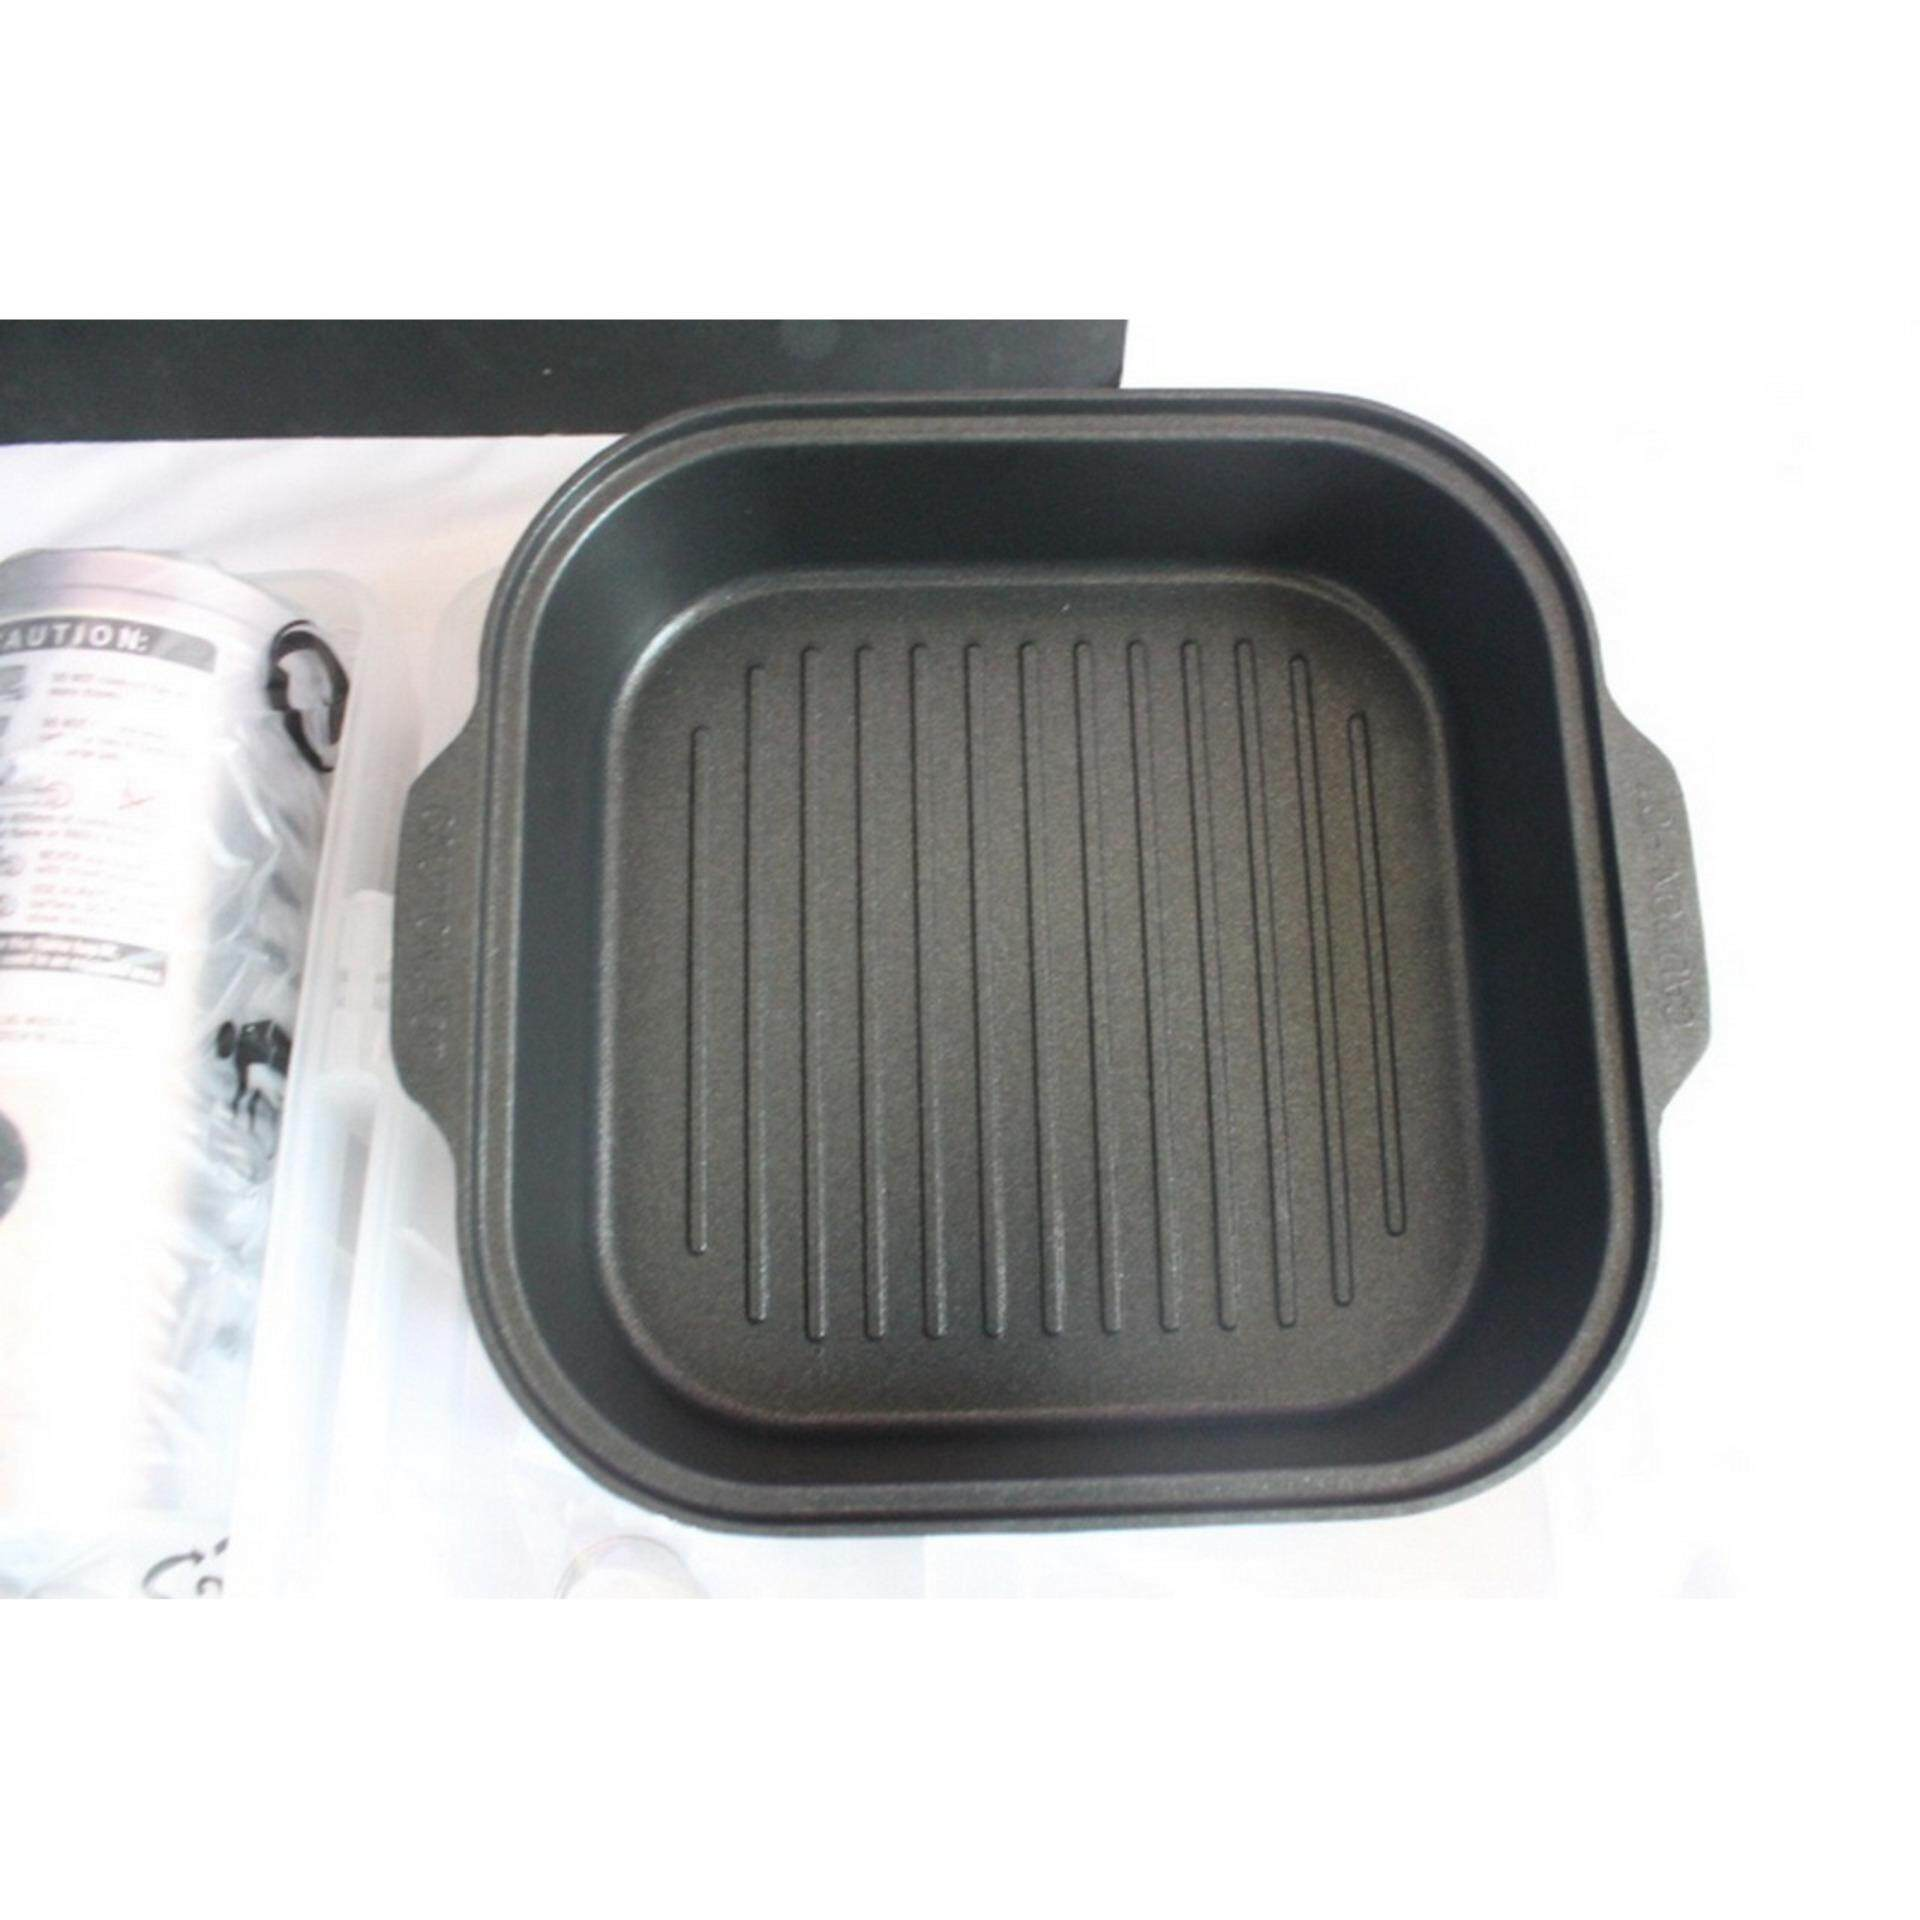 1 Set Outdoor Mini Portable Stove with Grill Pan,Food Tong, Scissor set. Ship in 6 Hours ! (Chrome)